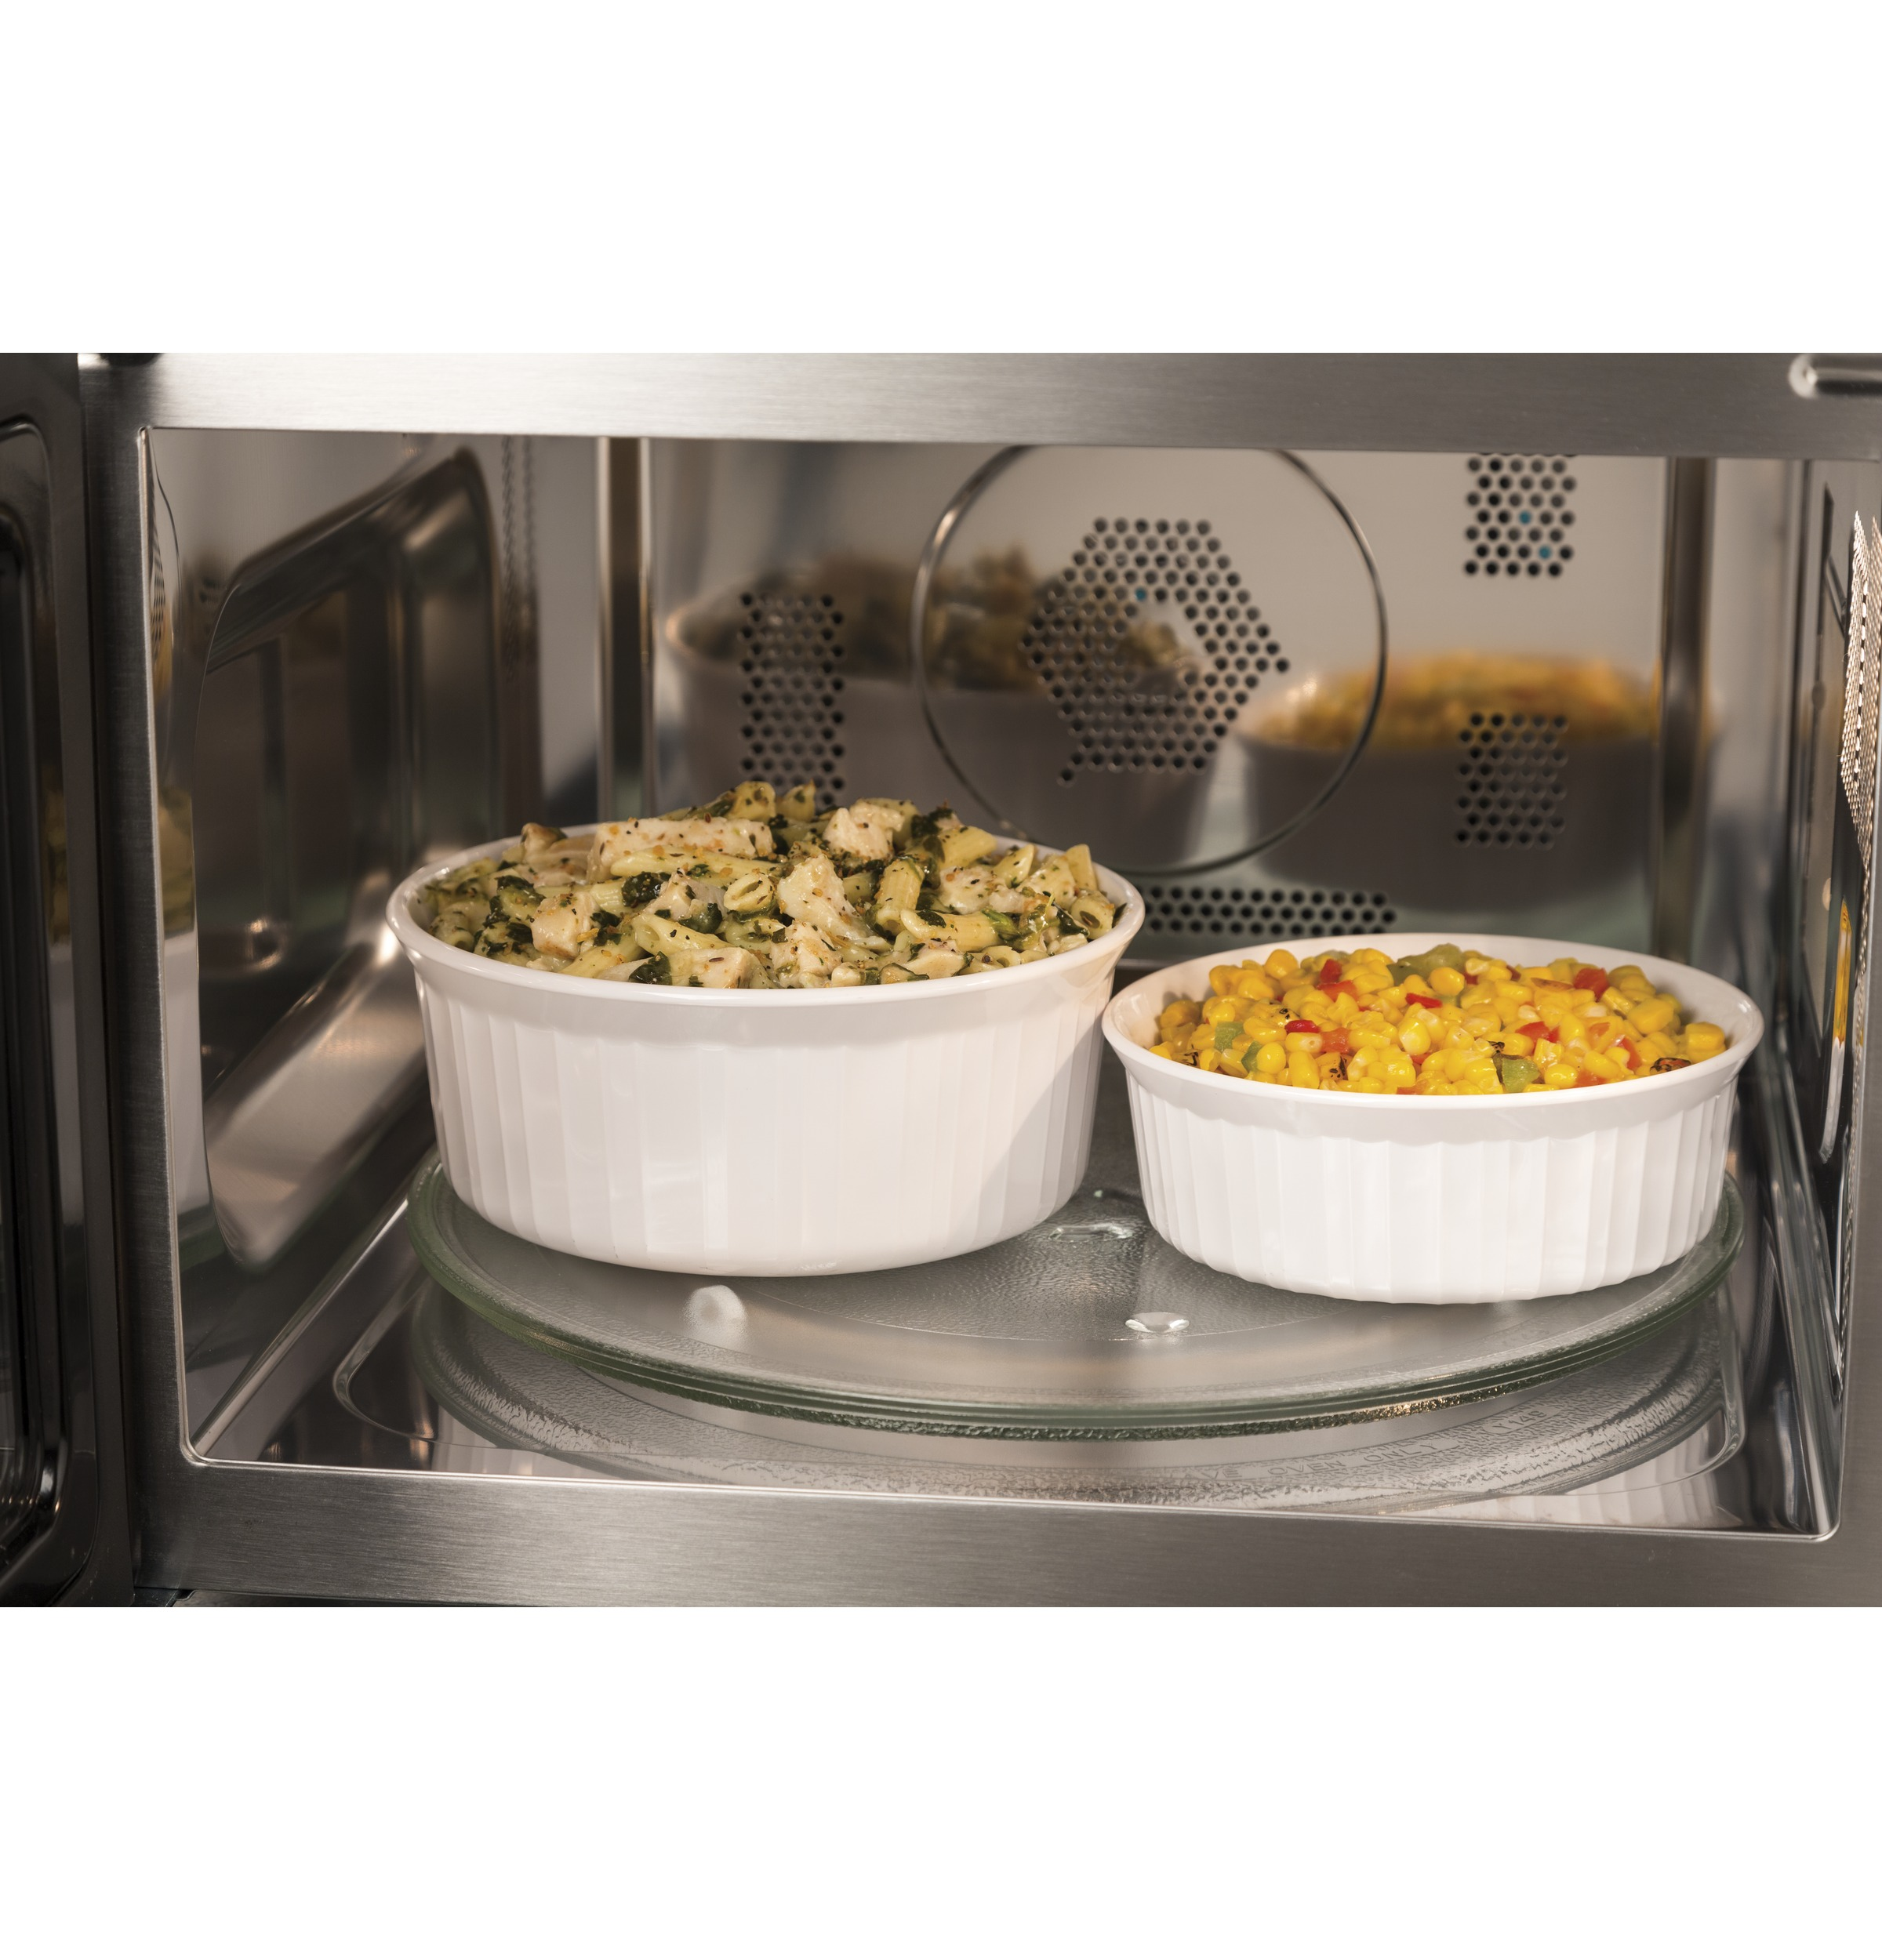 Model: PEB9159SJSS | GE Profile™ Series 1.5 Cu. Ft. Countertop Convection/Microwave Oven